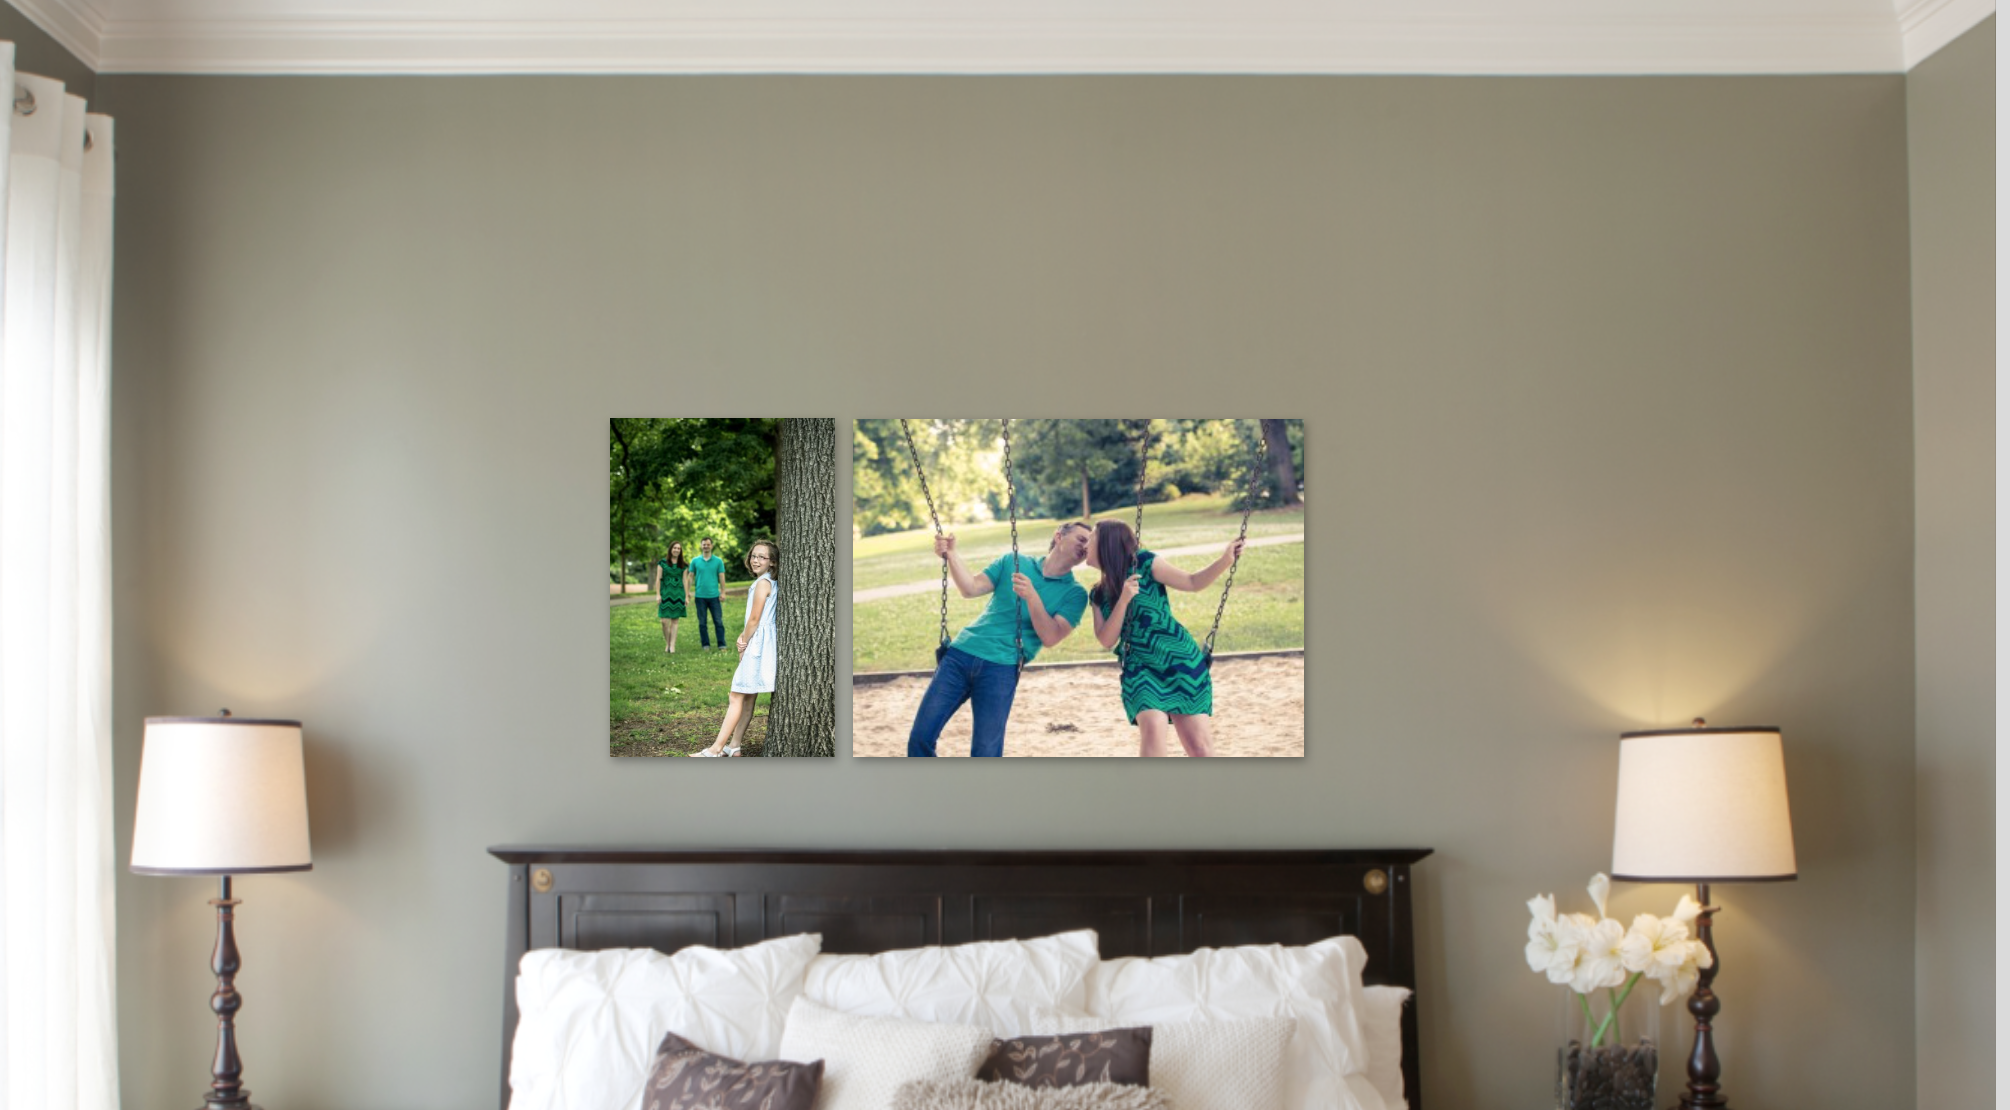 Decorate your Master Bedroom with your Family Photos.